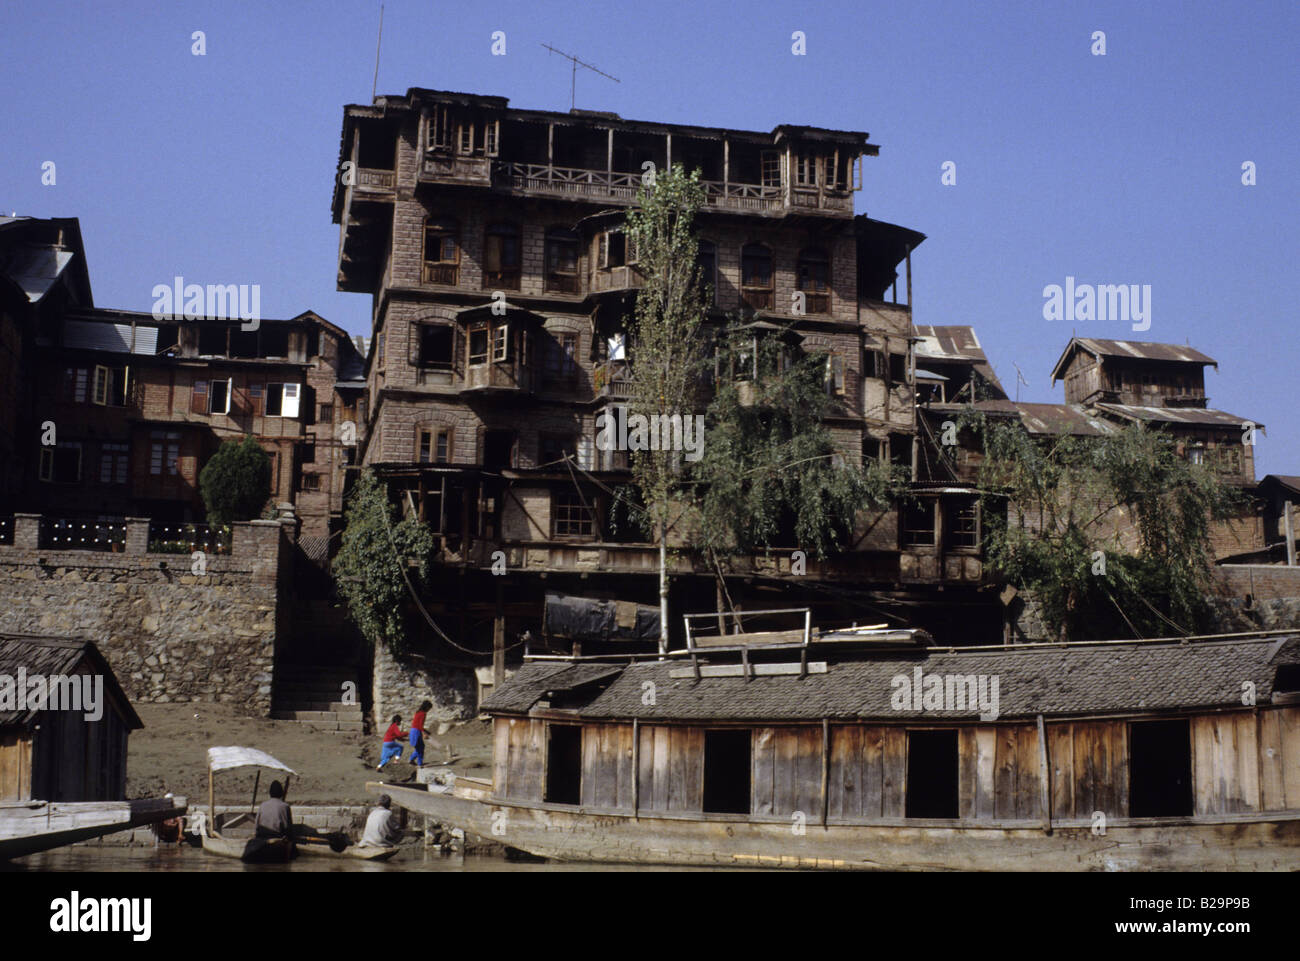 North India Ref WP SWIN 000644 013 Date 07 08 2007 COMPULSORY CREDIT World Pictures Photoshot - Stock Image